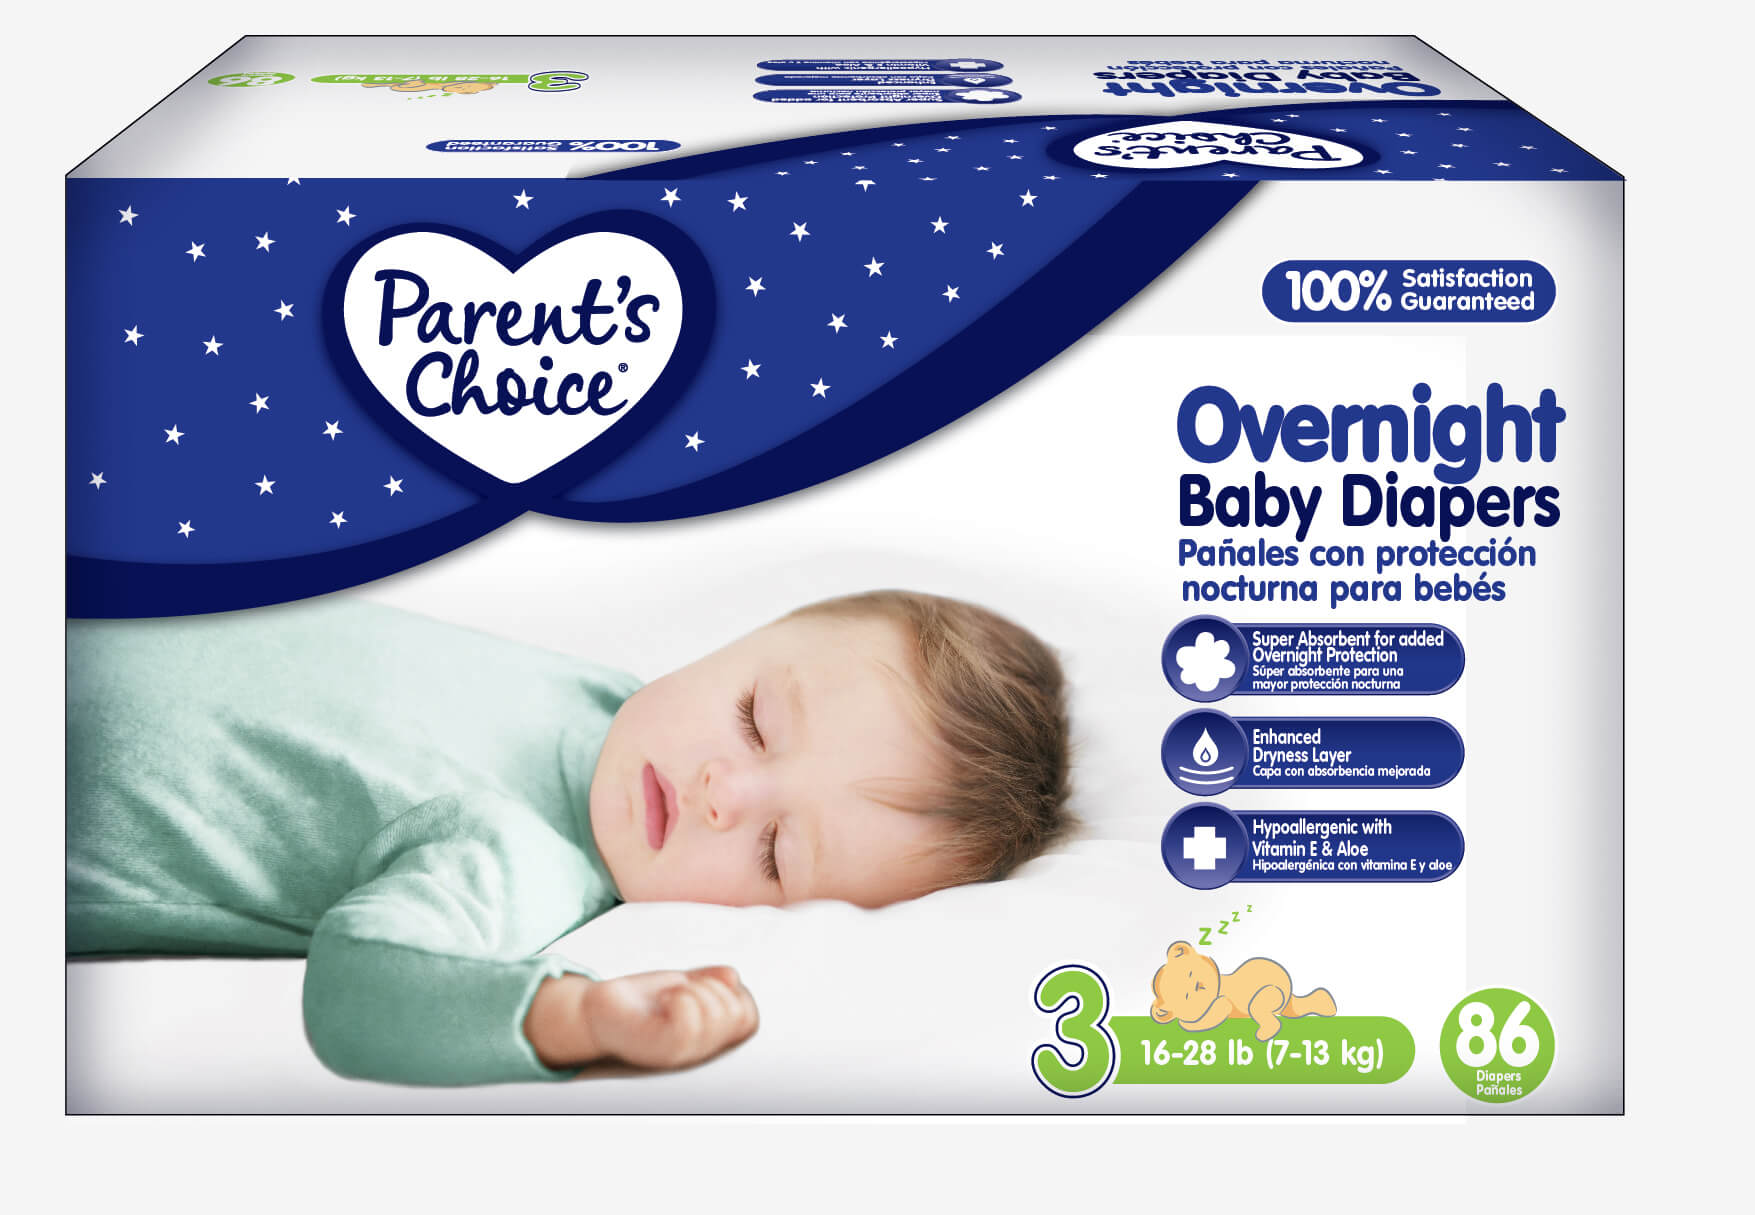 Parent's Choice Overnight Baby Diapers   Singing Through the Rain